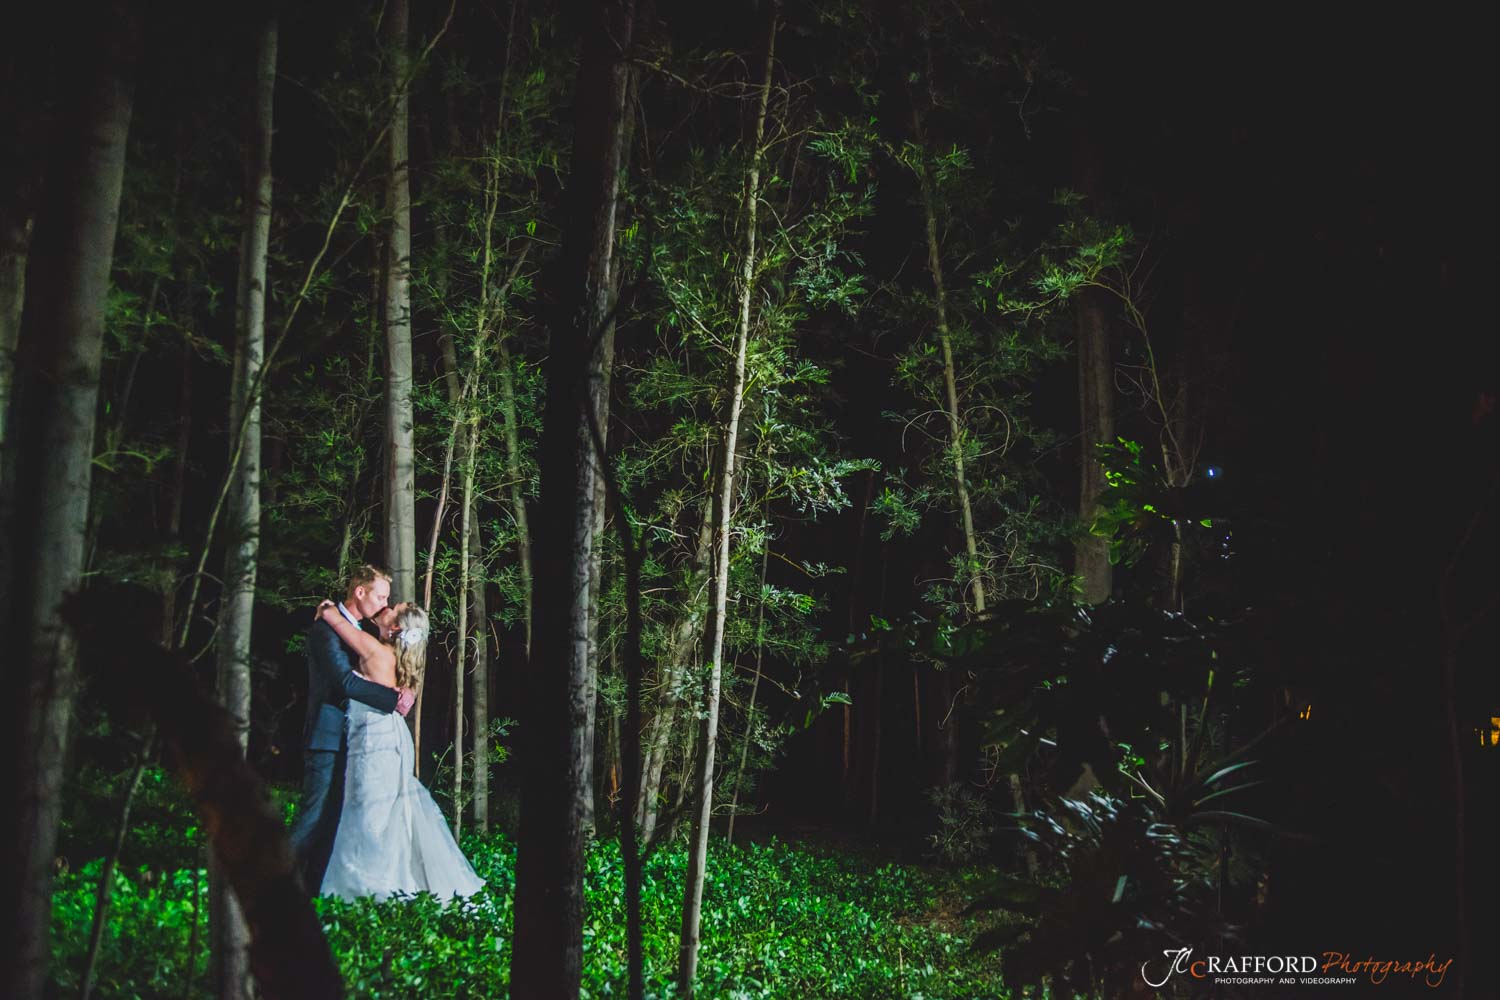 Galagos Wedding photography by JC Crafford Photography